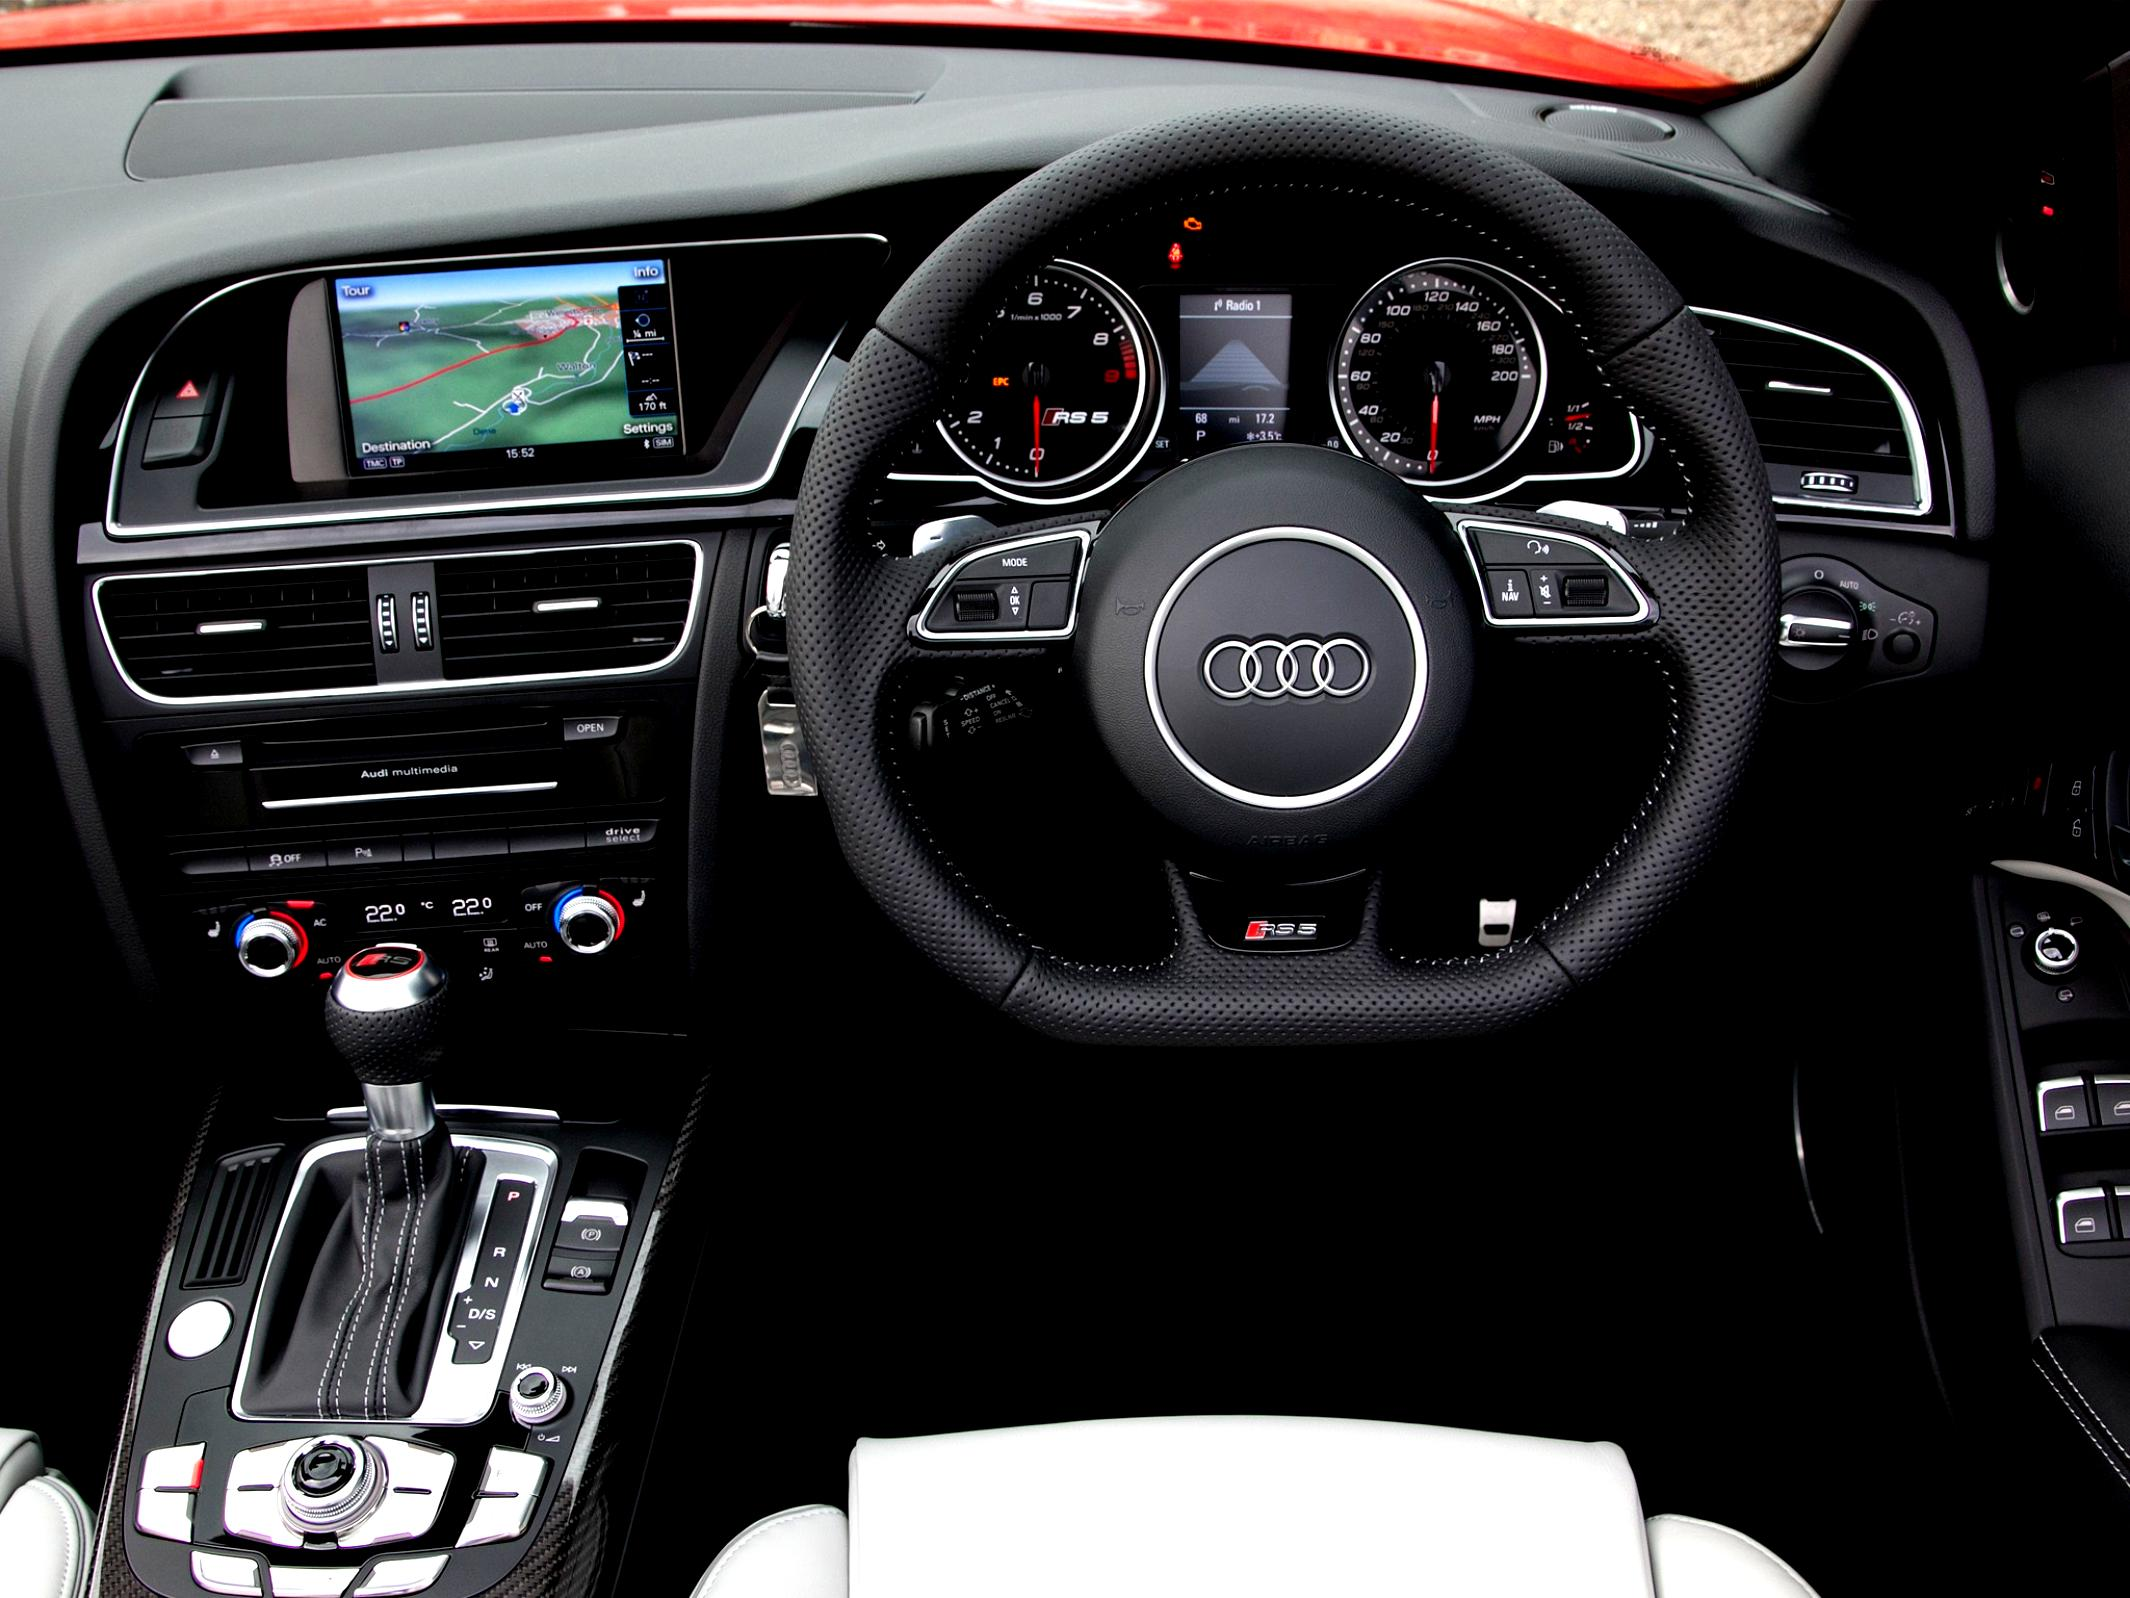 Audi RS5 Cabriolet 2013 #93